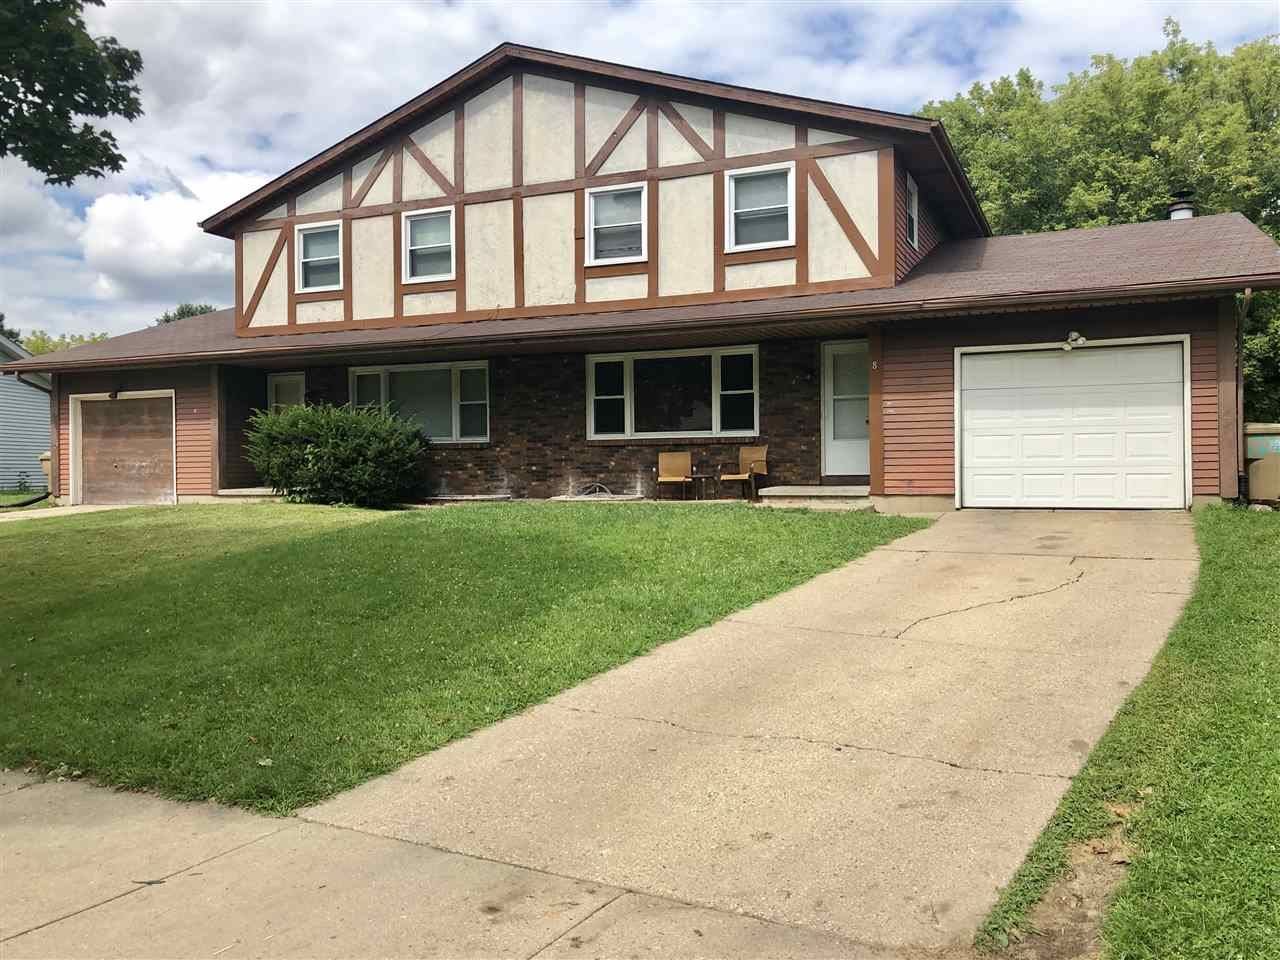 6-8 O\'Brien Ct, Madison, WI 53714 - #: 1874714